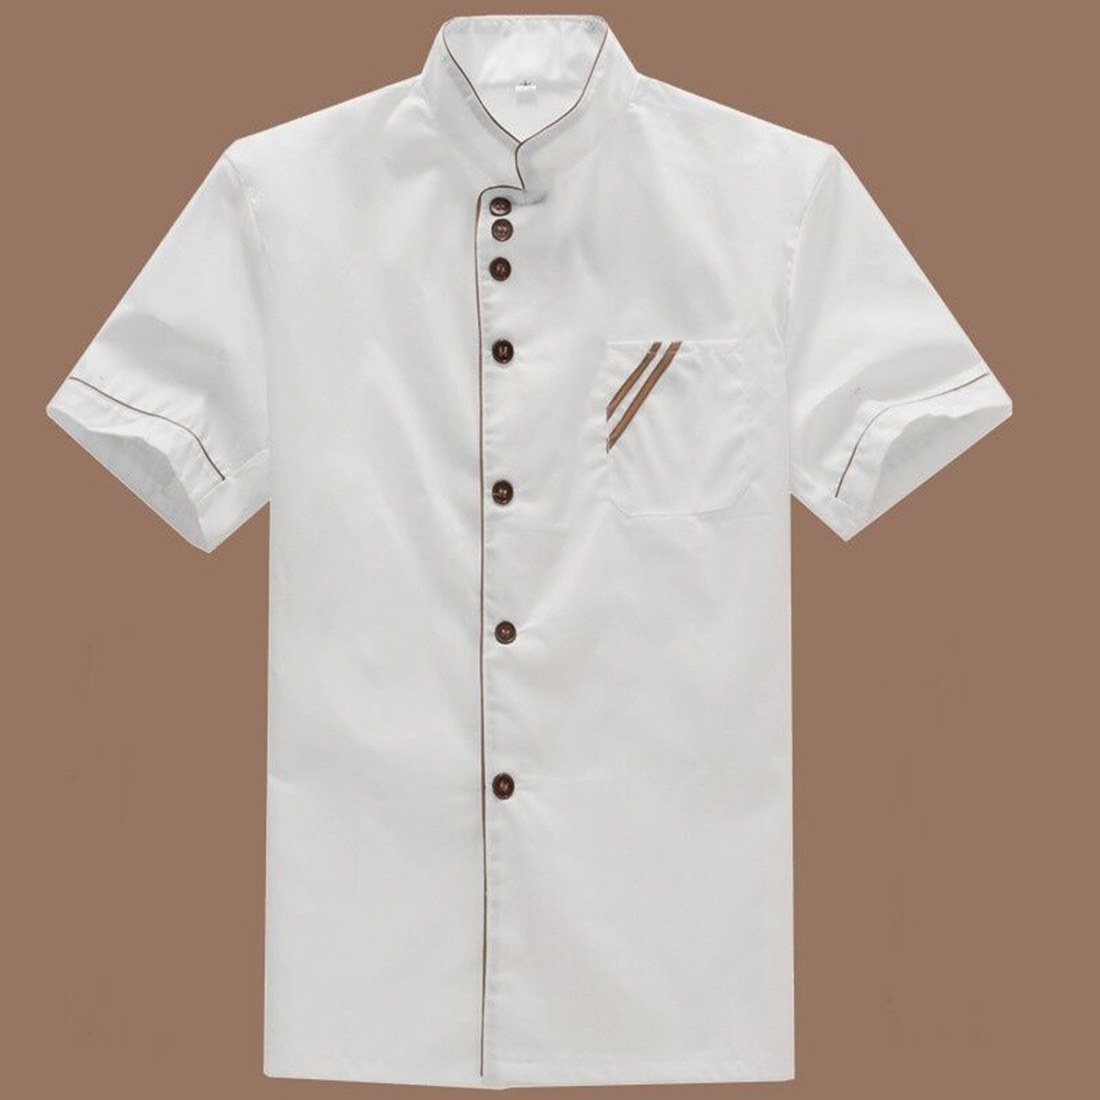 Short Sleeve Solid Breathable Wearable Resin Button Bakery Cooker Uniform White Kitchen Chef Jacket Summer Restaurant Catering